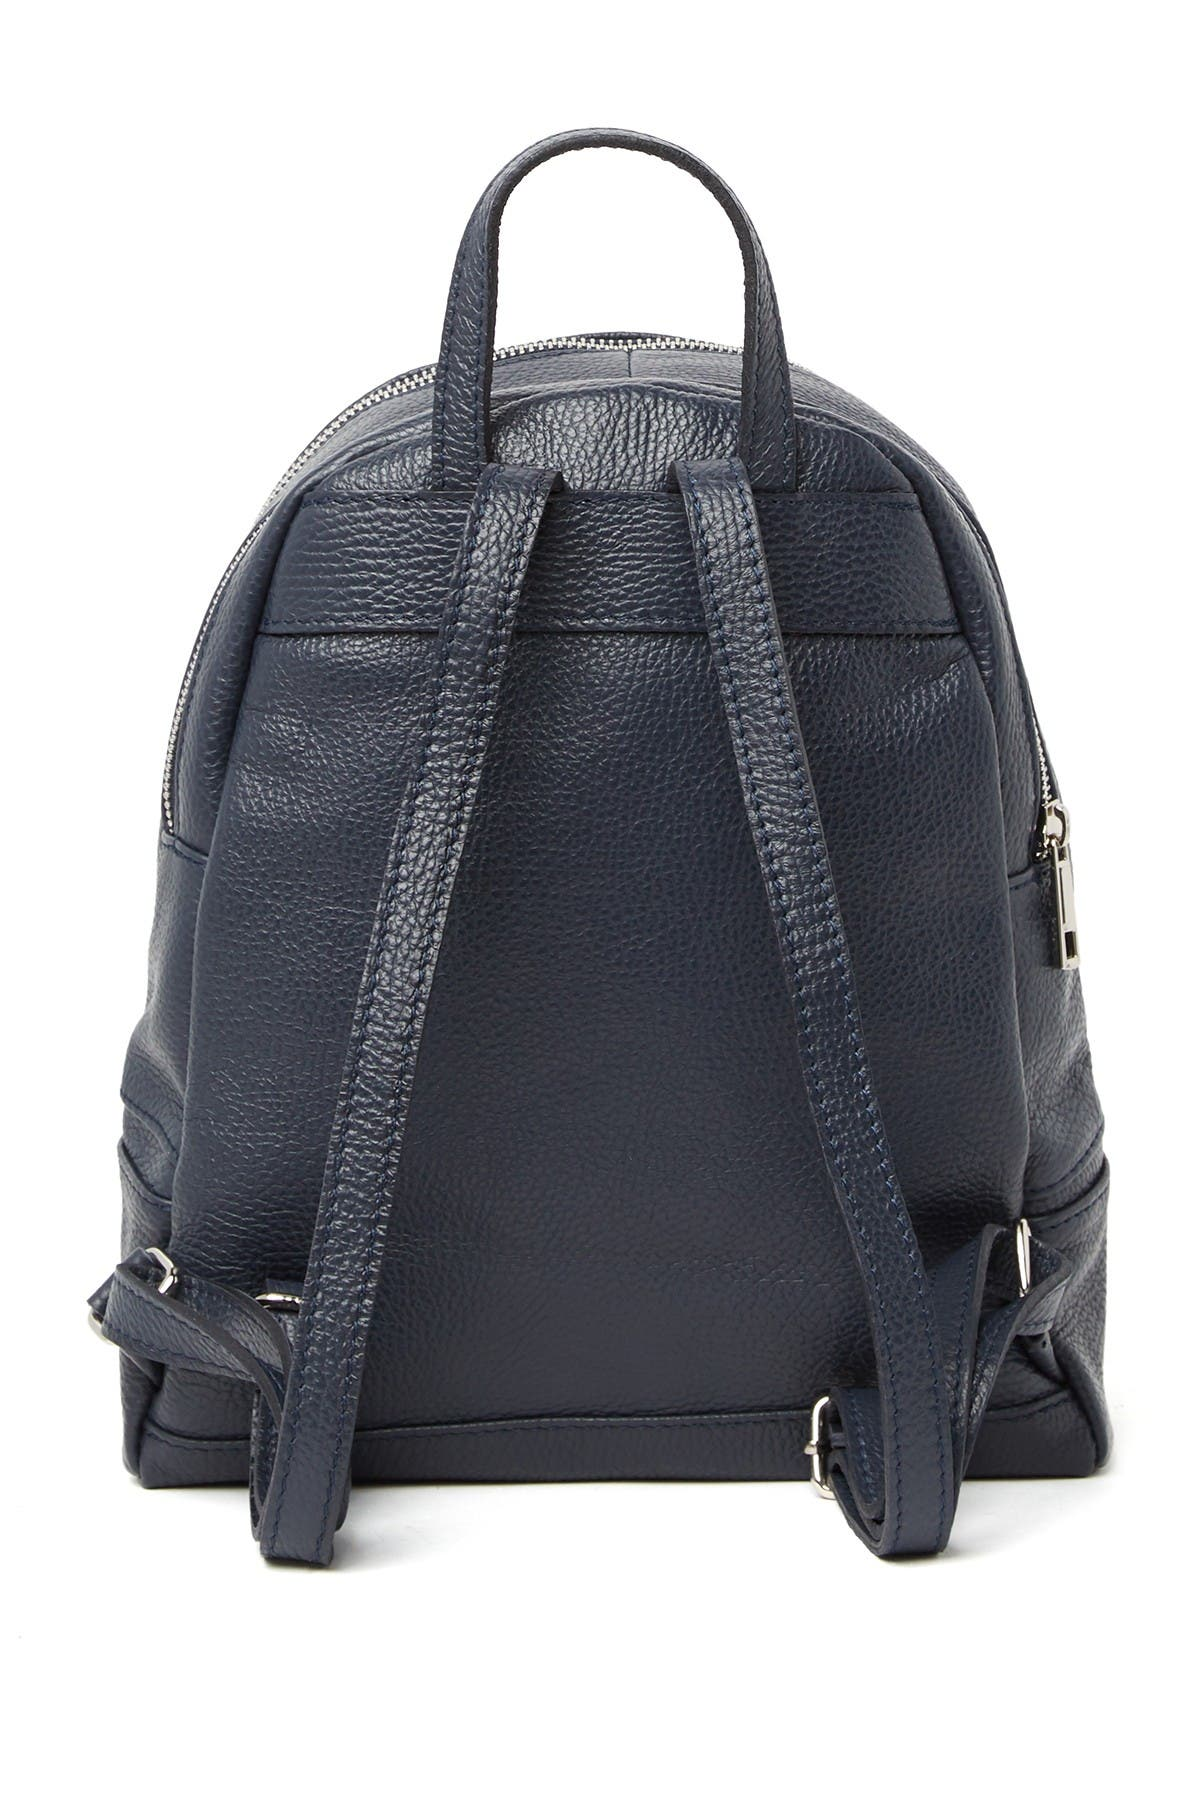 Image of Anna Luchini Leather Backpack